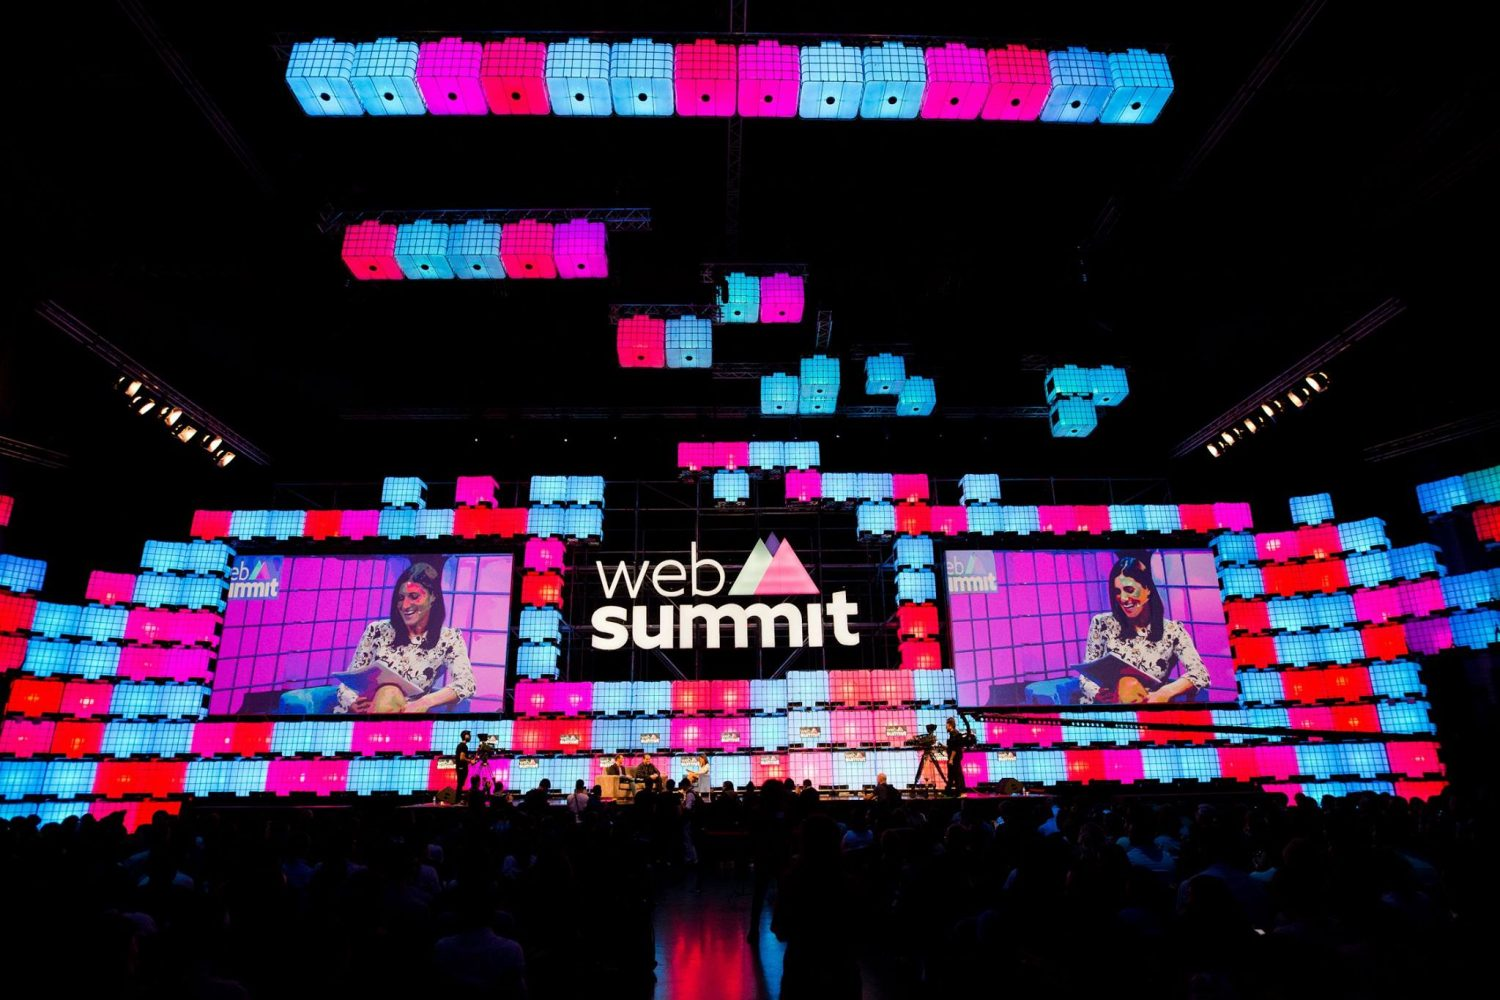 web summit Web Summit 2018 is Here 15110436 1210229909043051 1606021526751224024 o